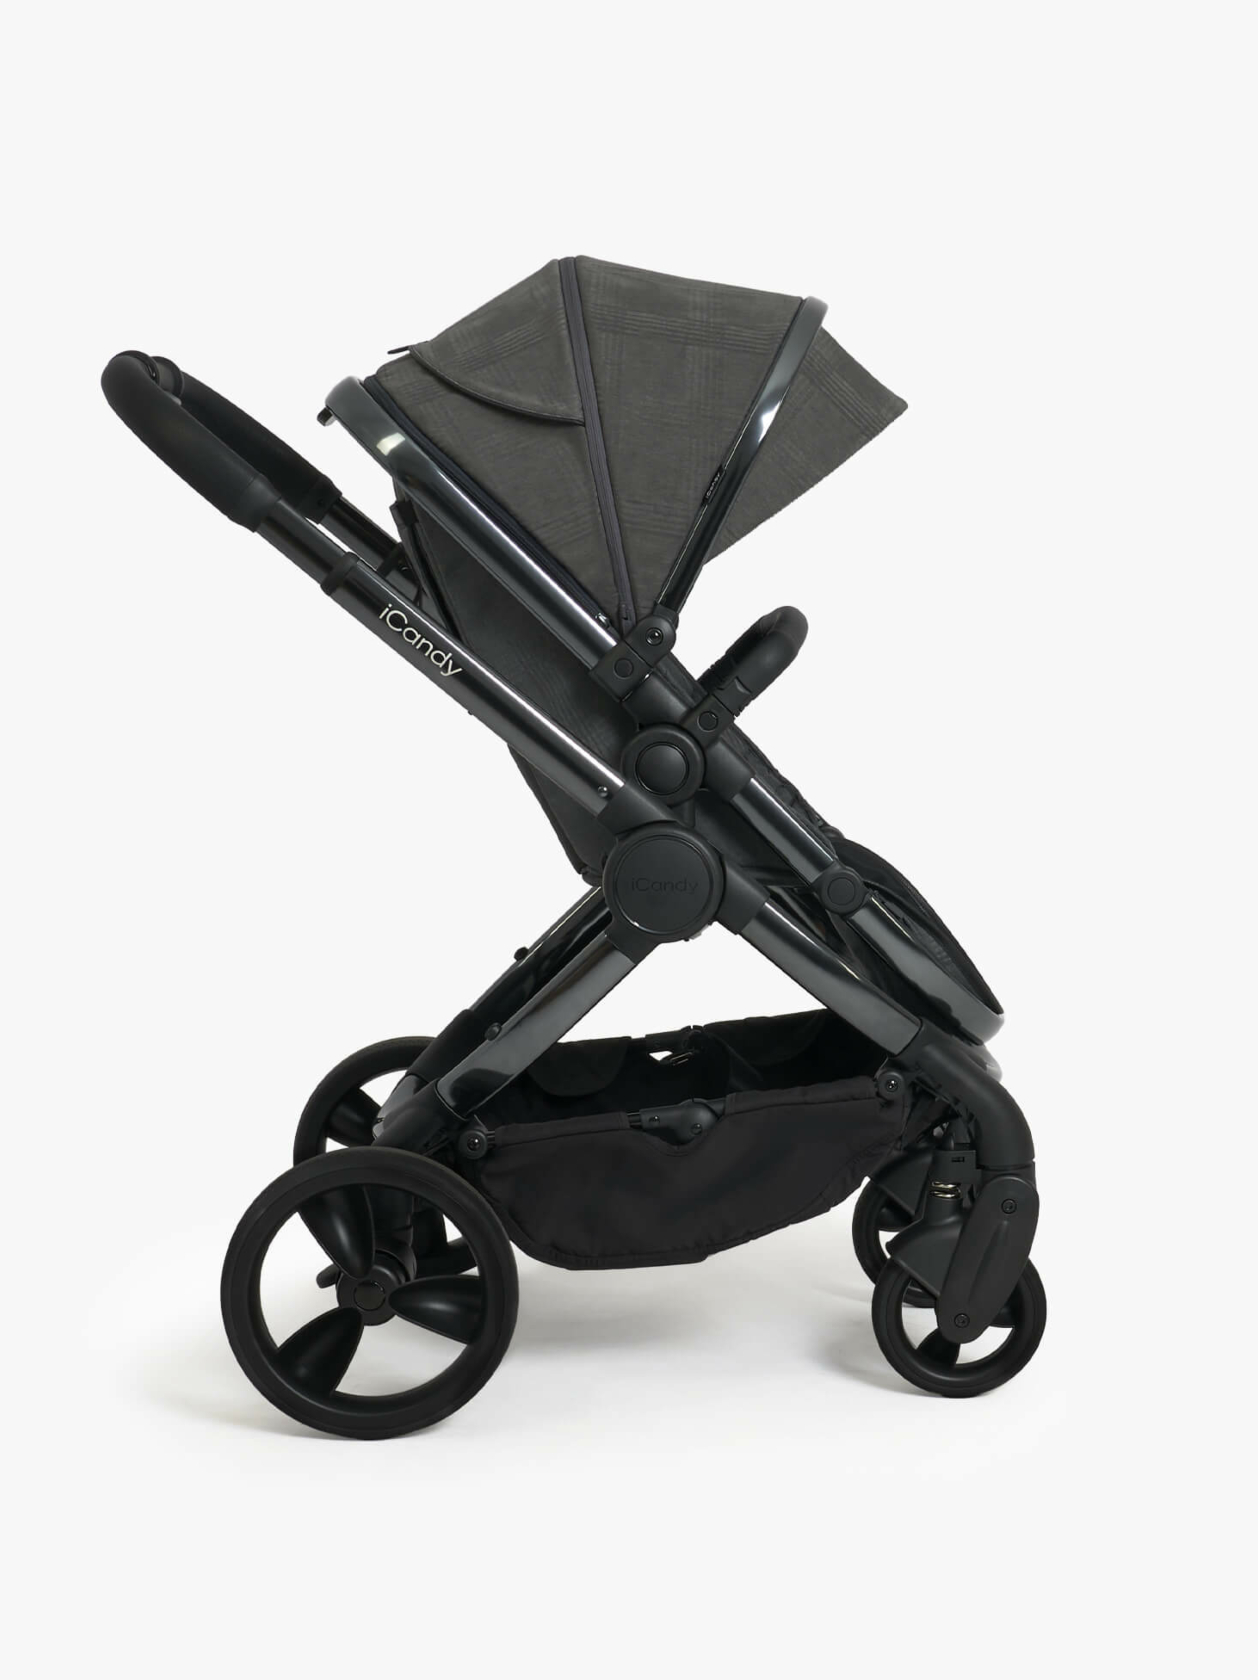 Peach Pushchair and Carrycot - Travel Accessory Deal